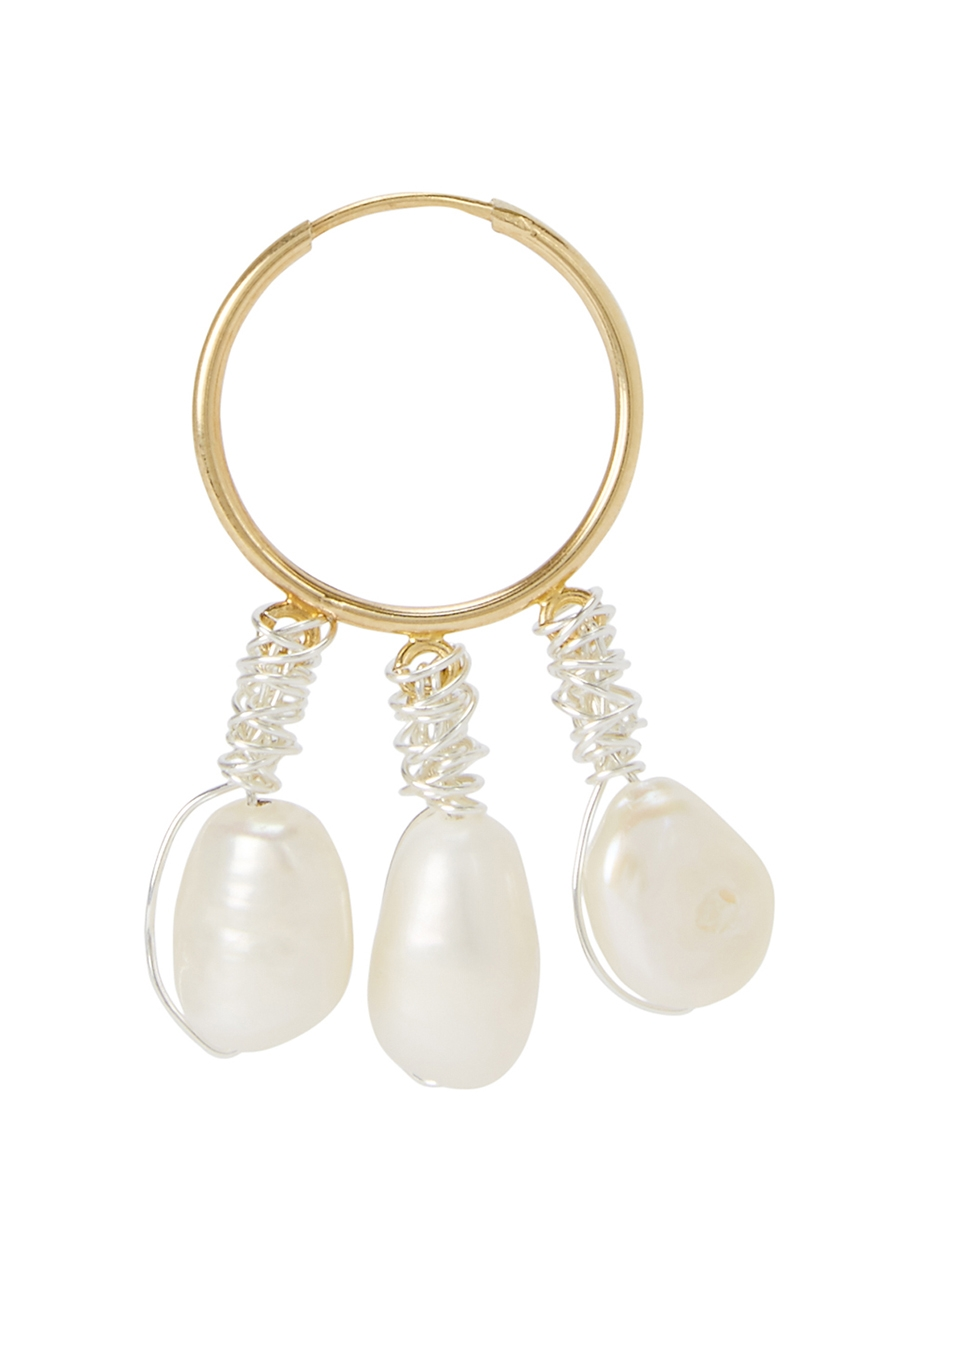 Chouchou pearl and gold-plated earring - WALD Berlin